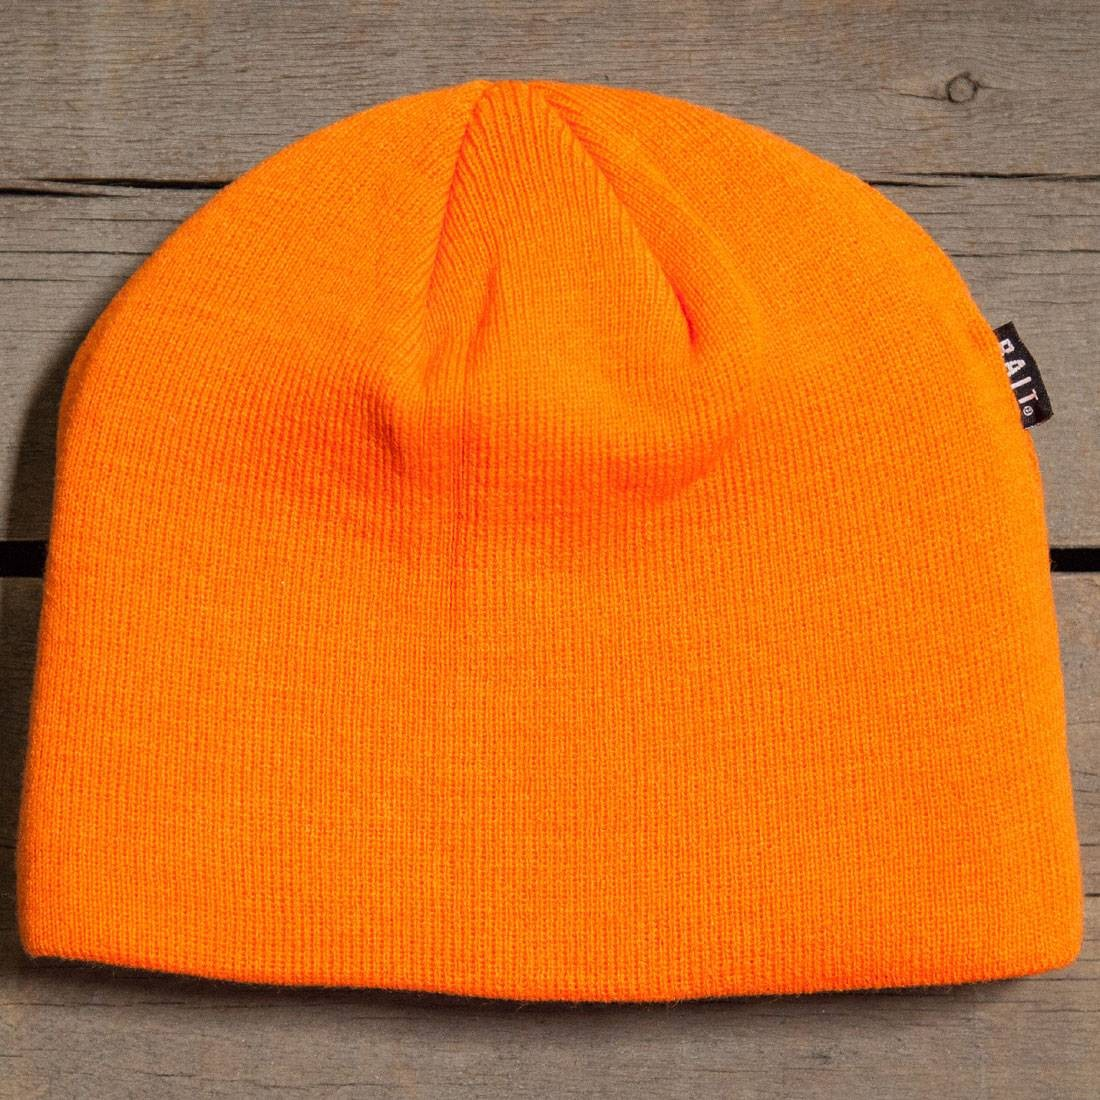 BAIT Basic Beanie (orange / safety orange)